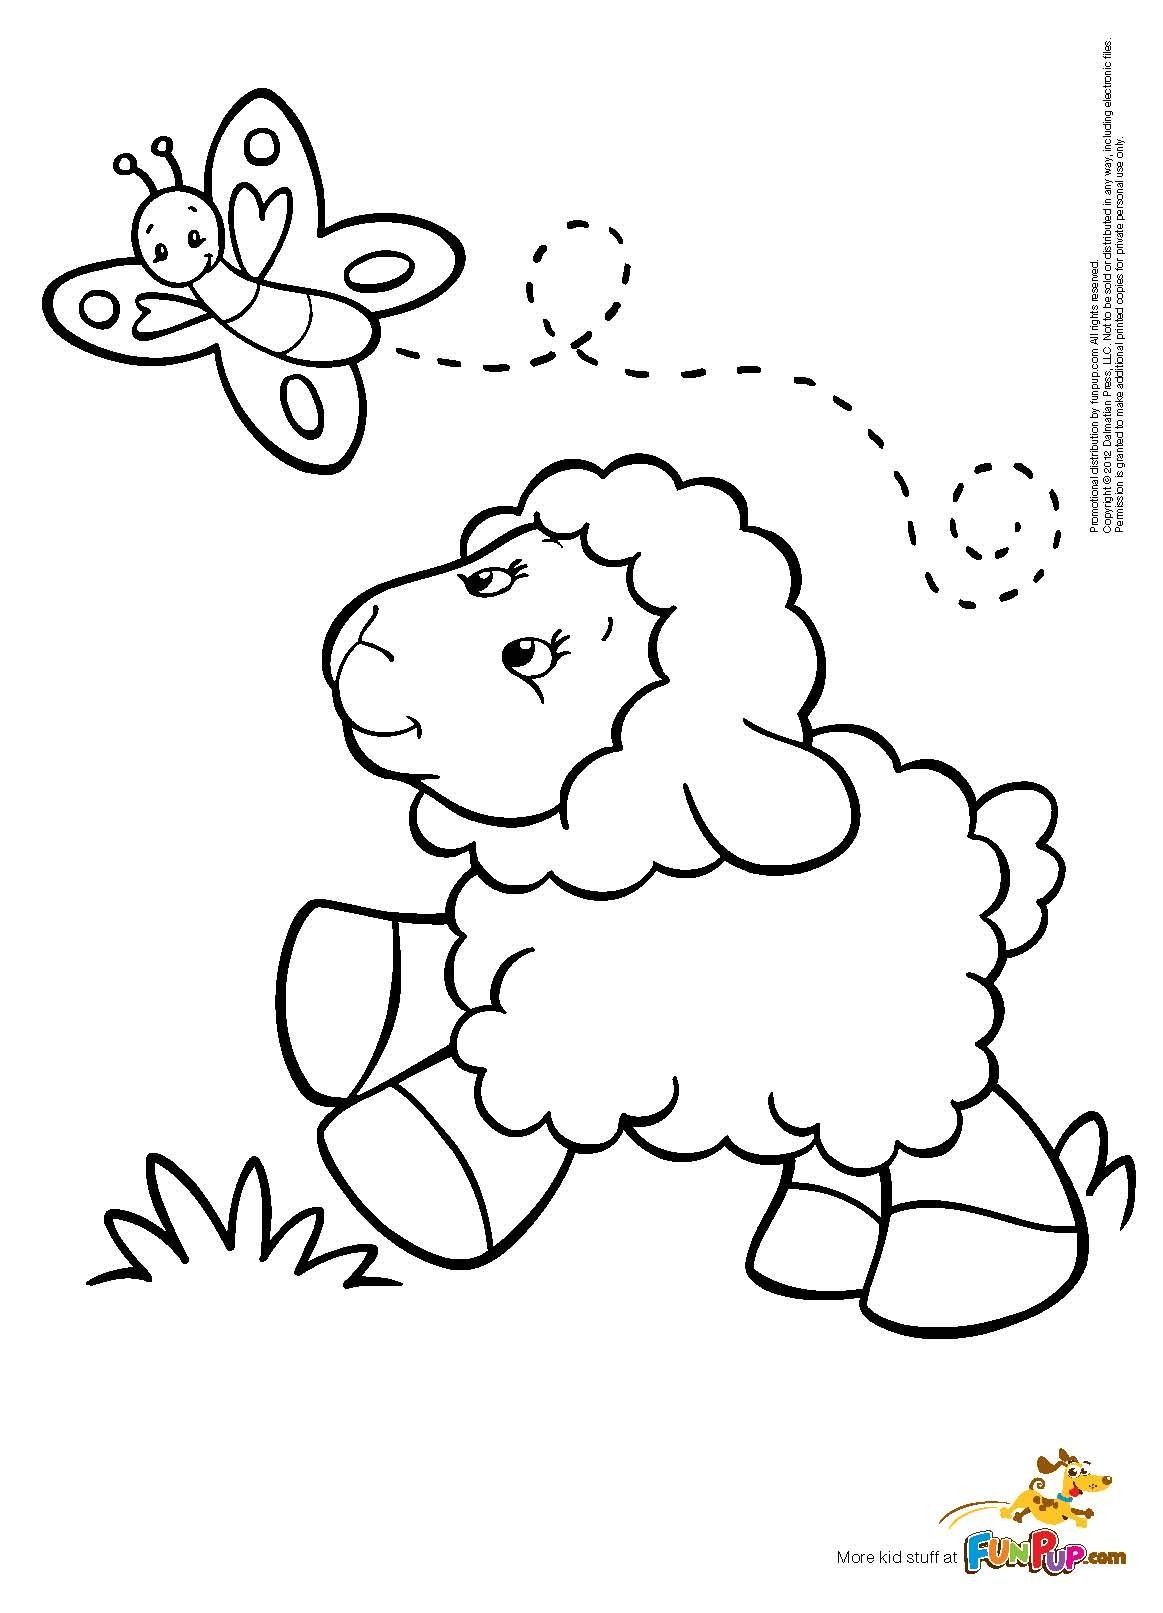 Kleurplaat colouring pinterest coloring pages color and sheep